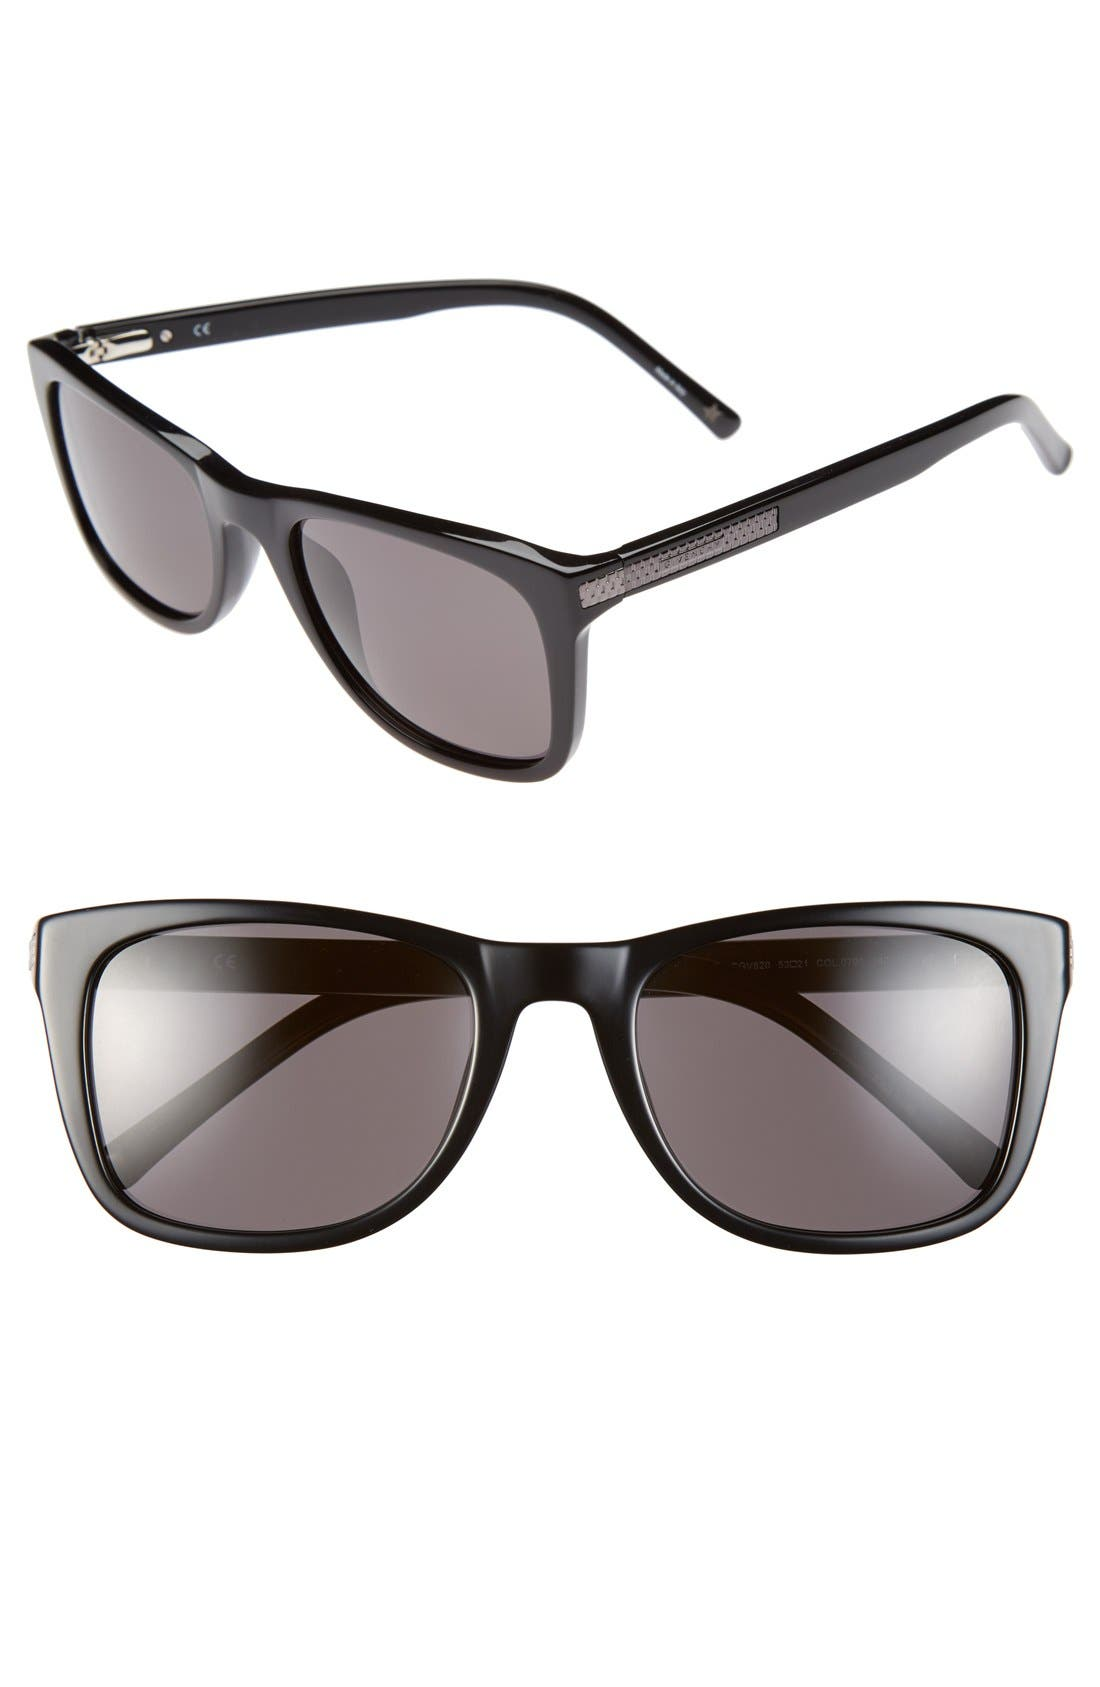 Main Image - Givenchy 53mm Sunglasses